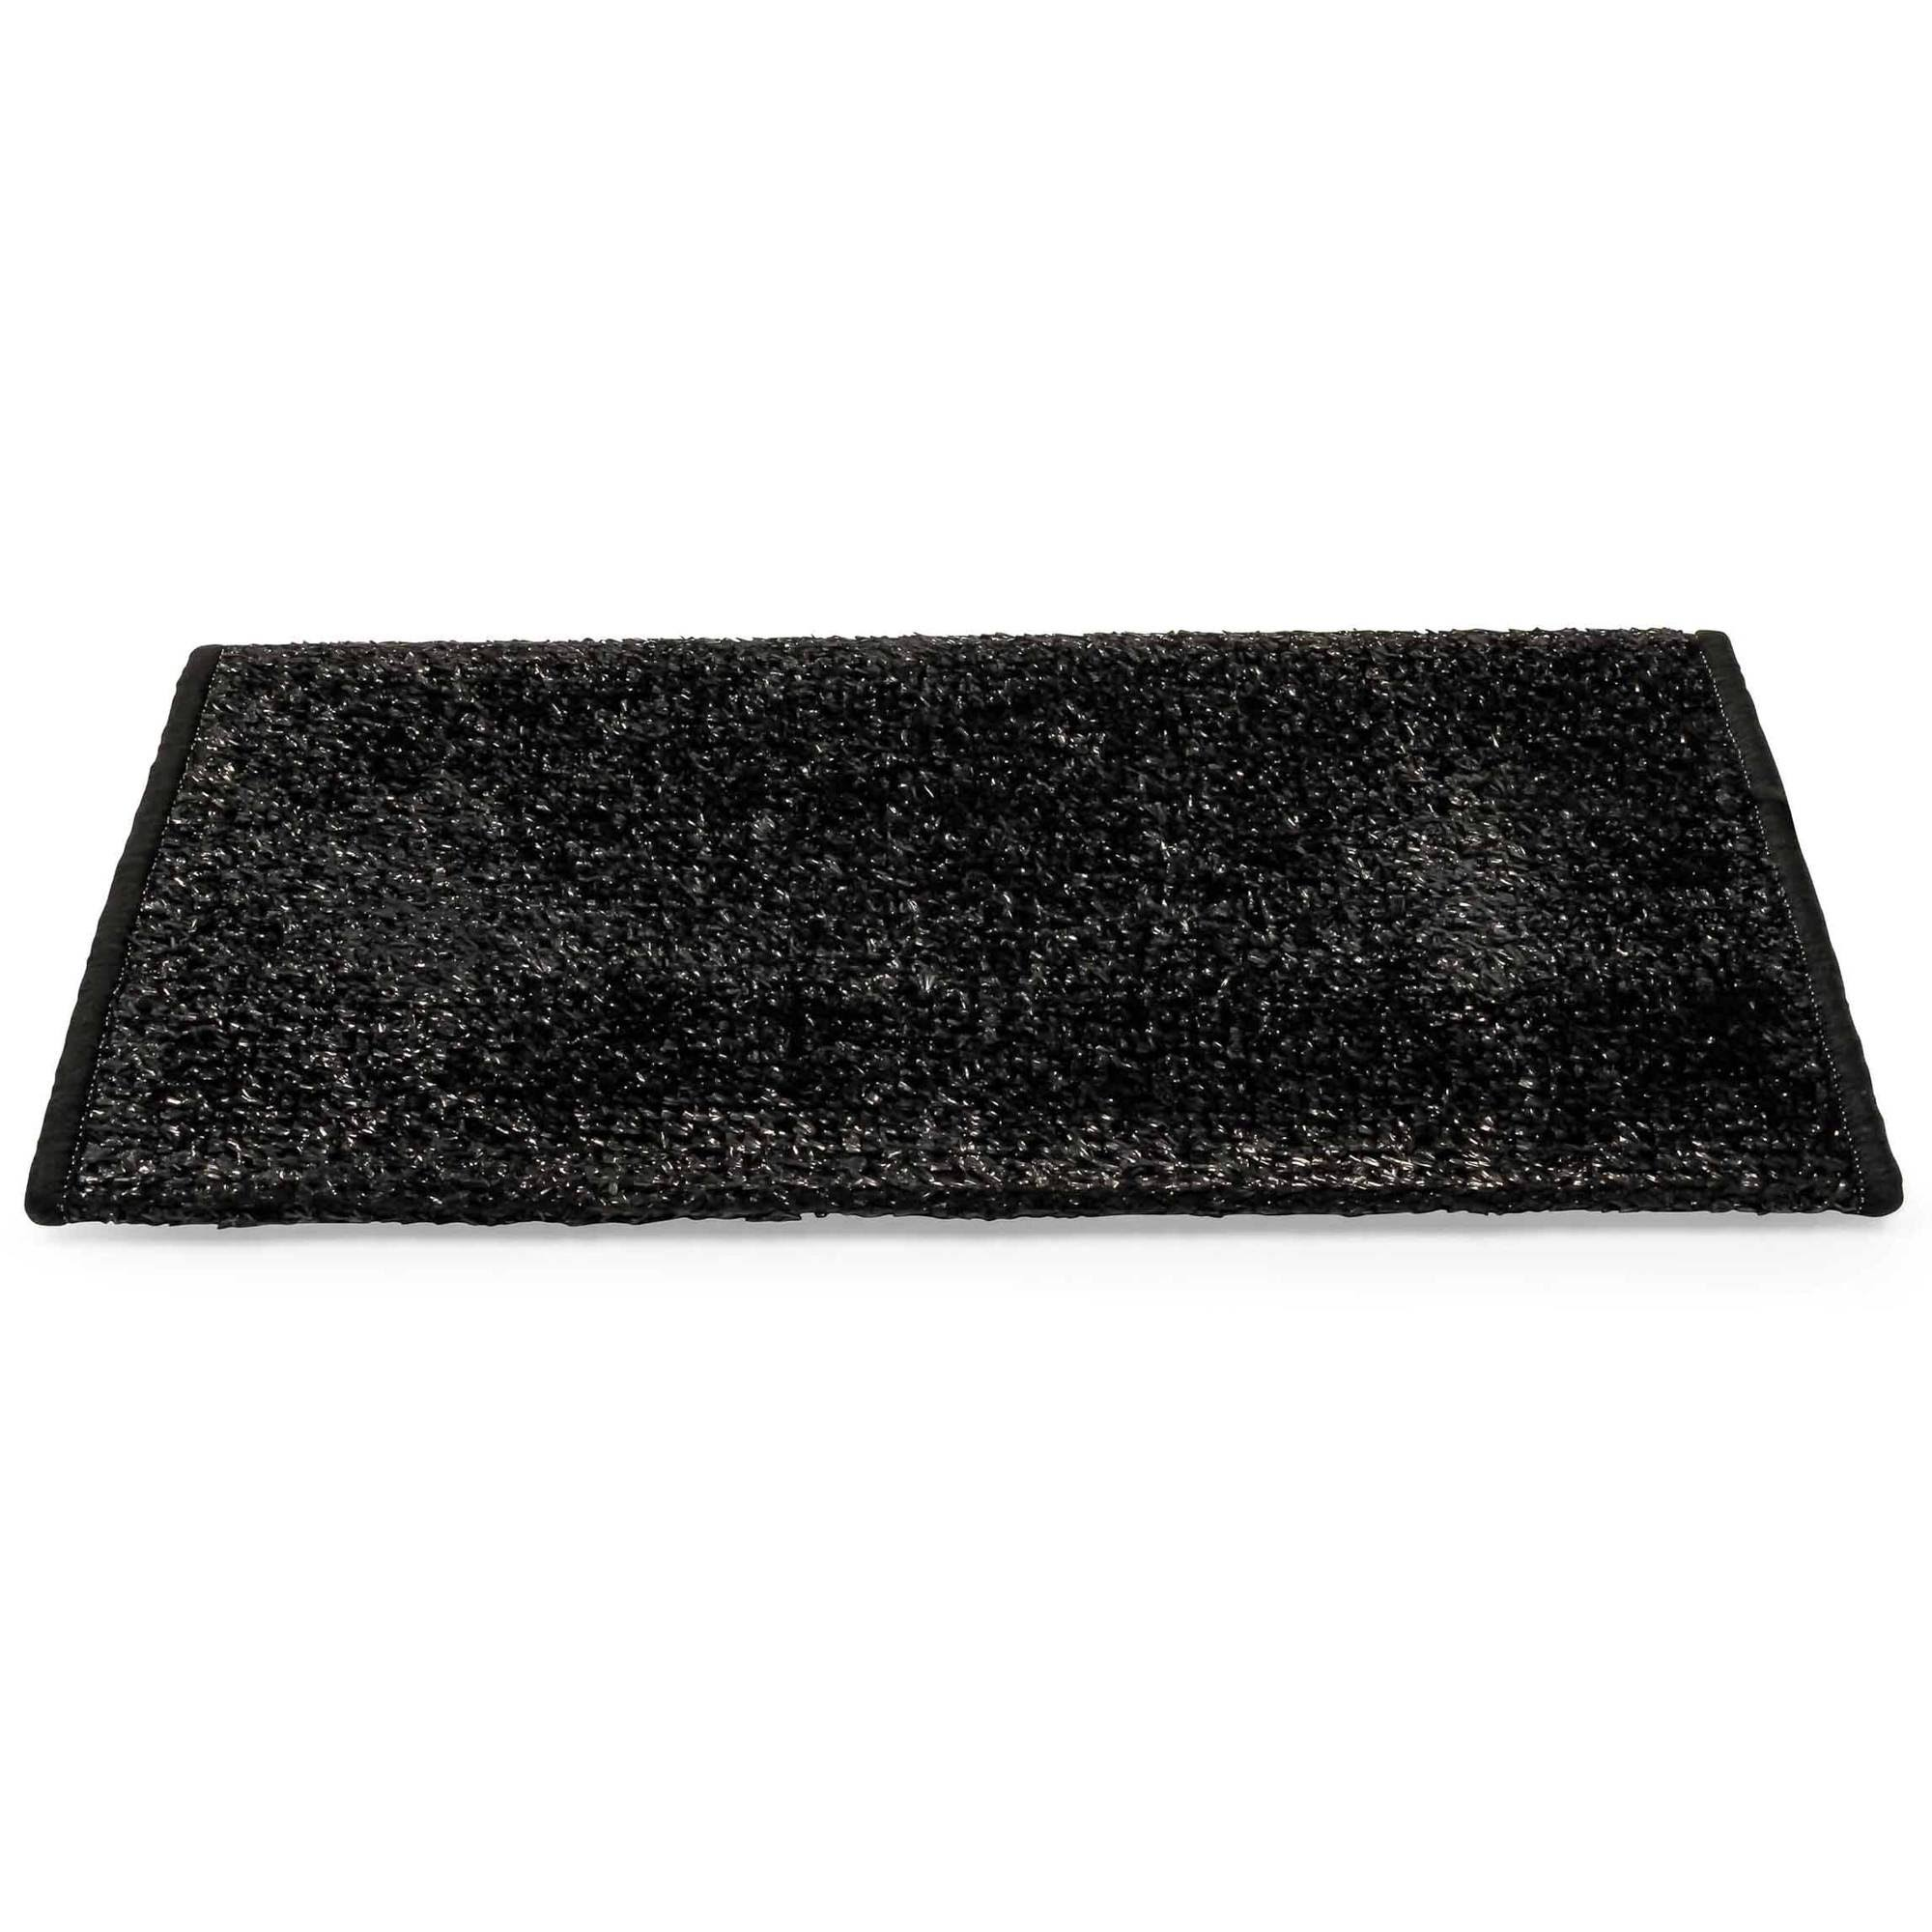 Camco 42915 Premium Wrap Around RV Step Rug, Turf Material (17.5 inch x 18 inch), Black